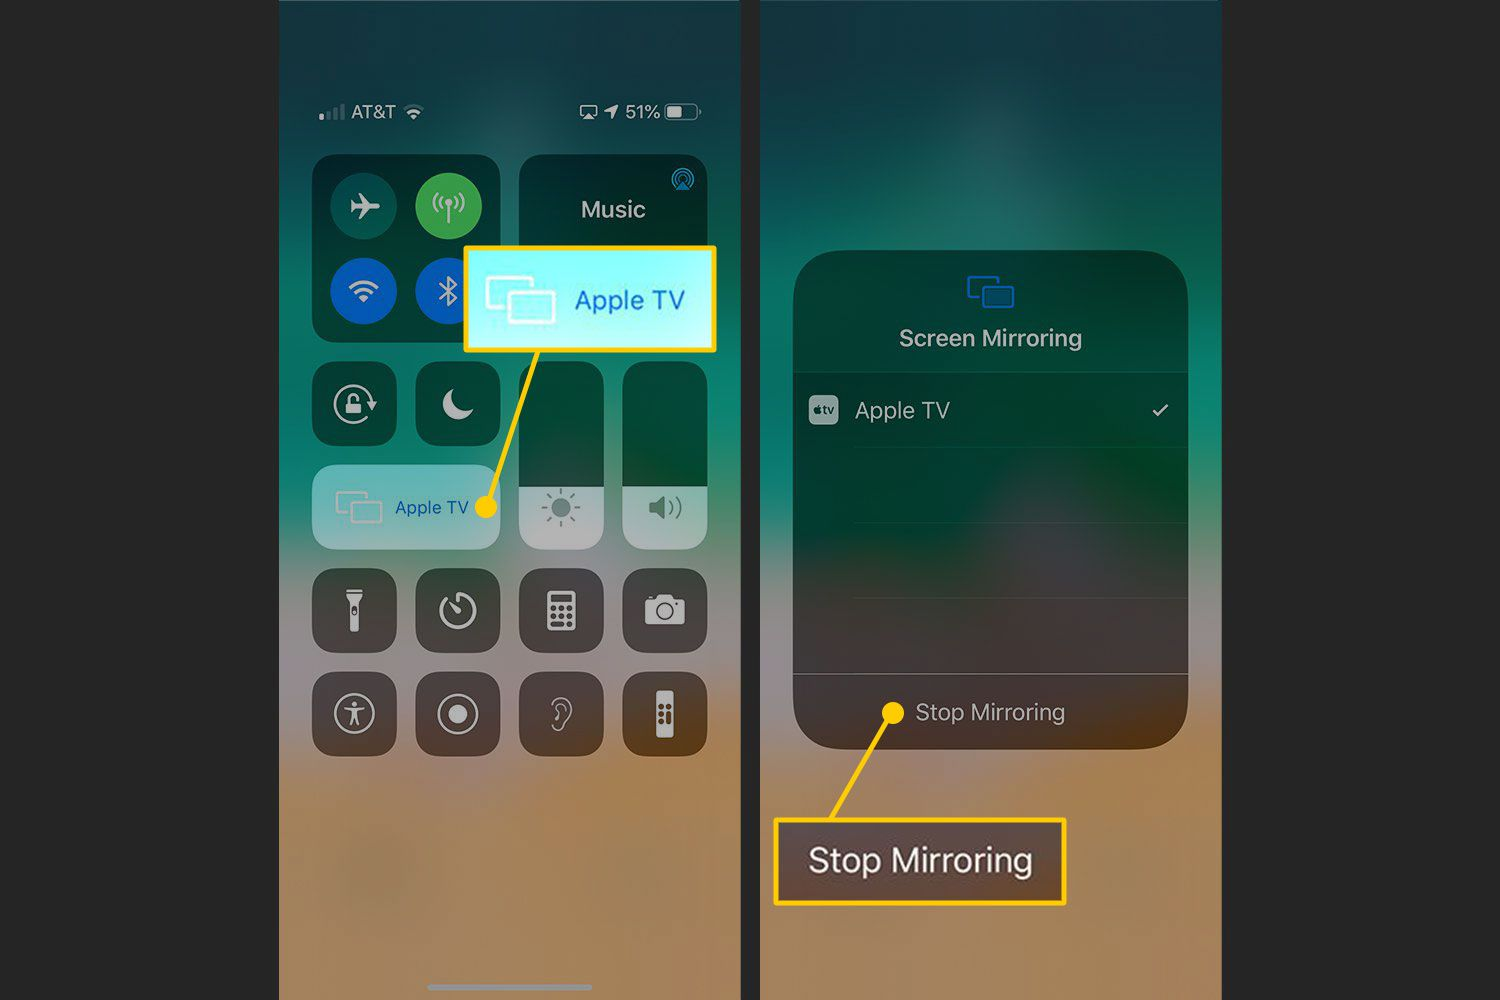 Stop Mirroring on an iPhone